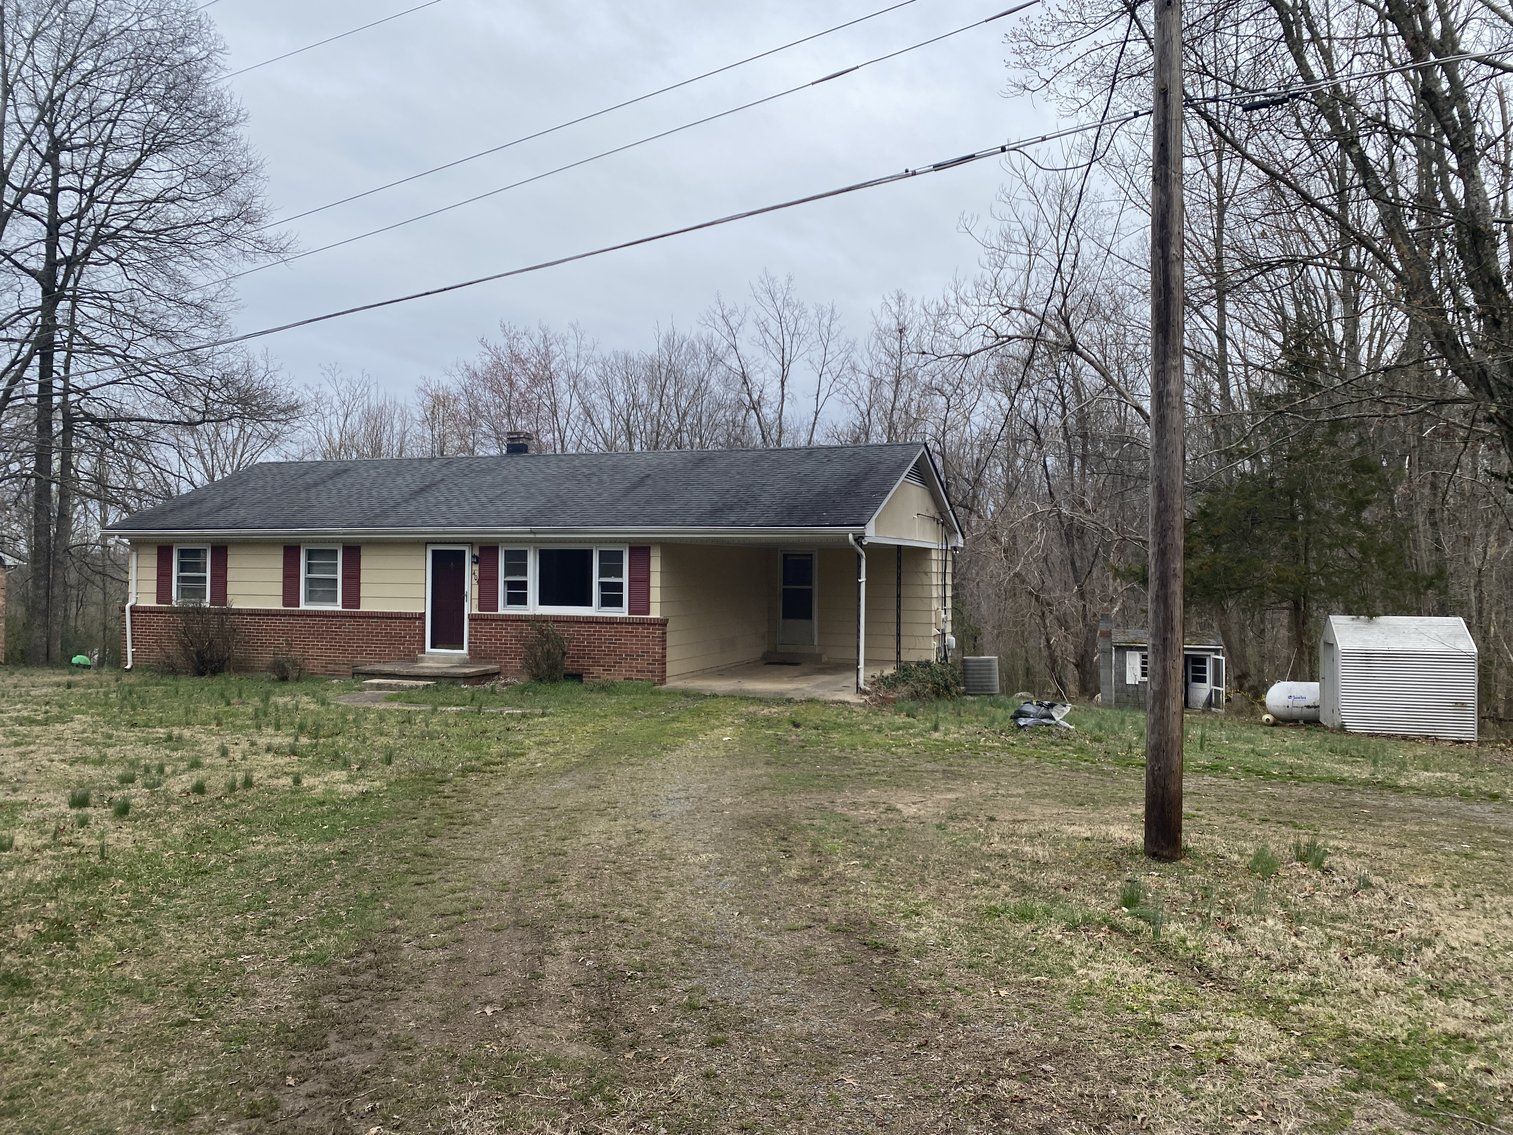 Image for 3 BR/1.5 BA Home on 1.6 +/- Acres in Madison County, VA